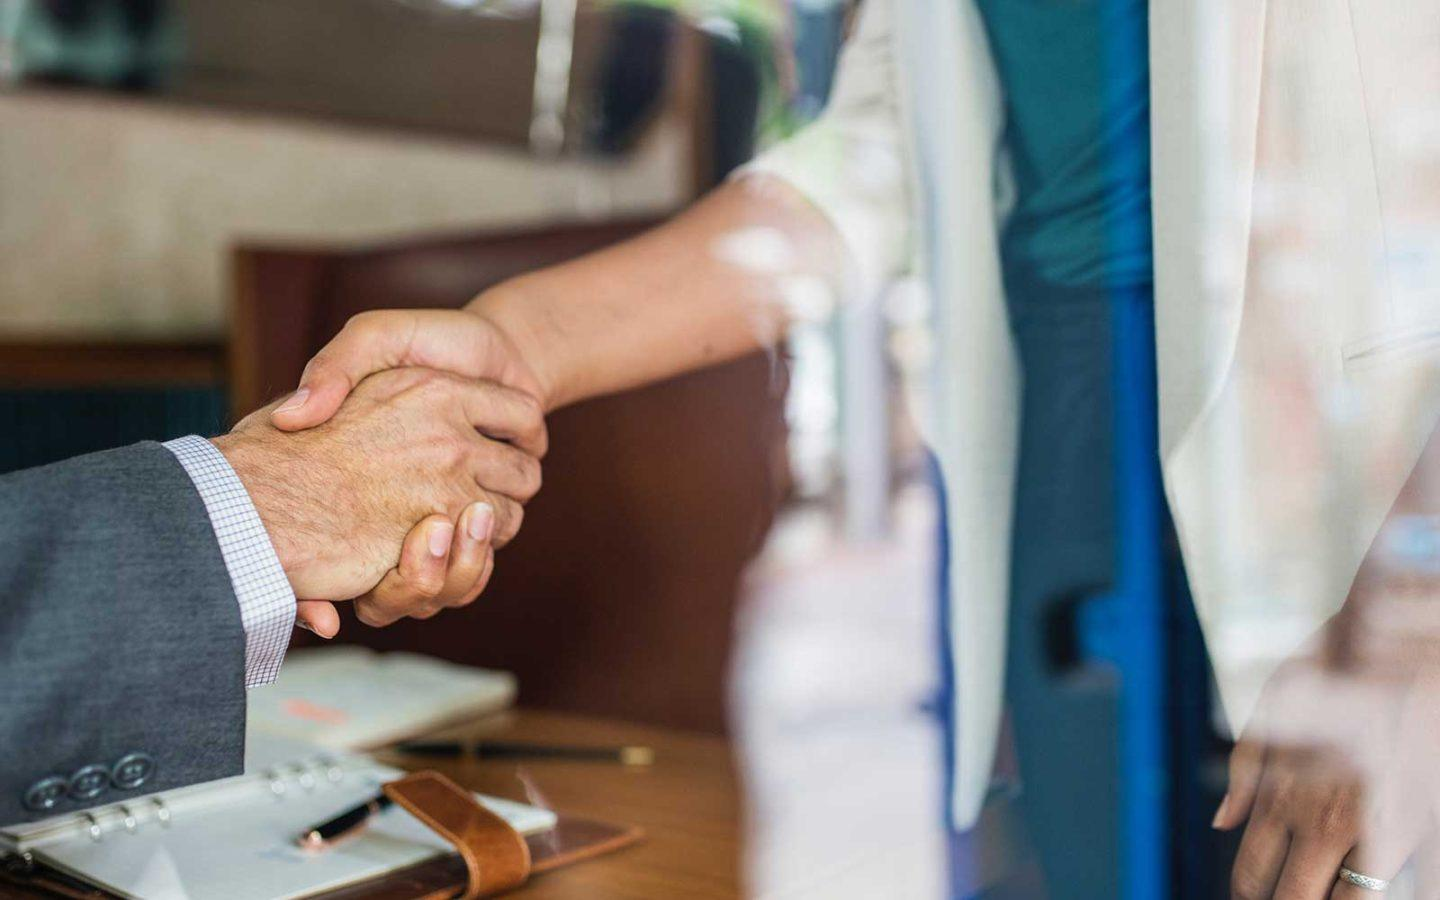 close up photo of a business man and woman's hands shaking